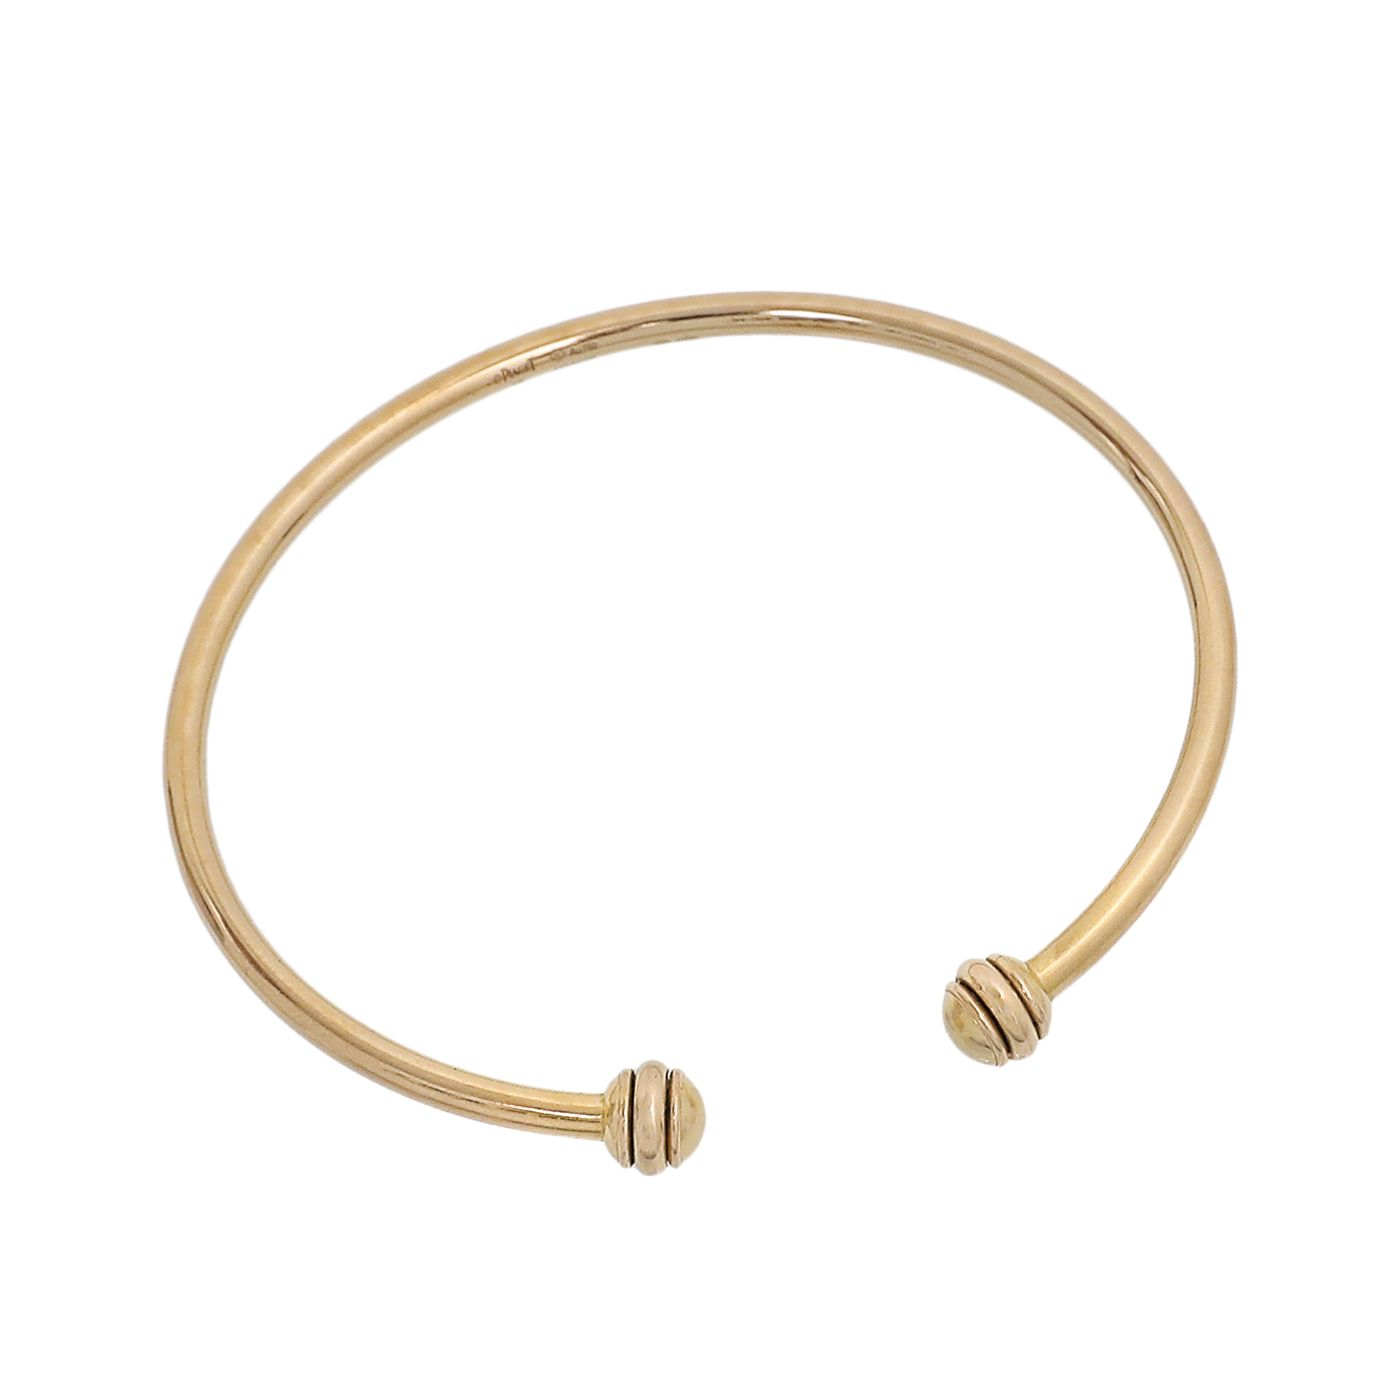 Piaget 18K Rose Gold Possession Open Bangle Bracelet 15